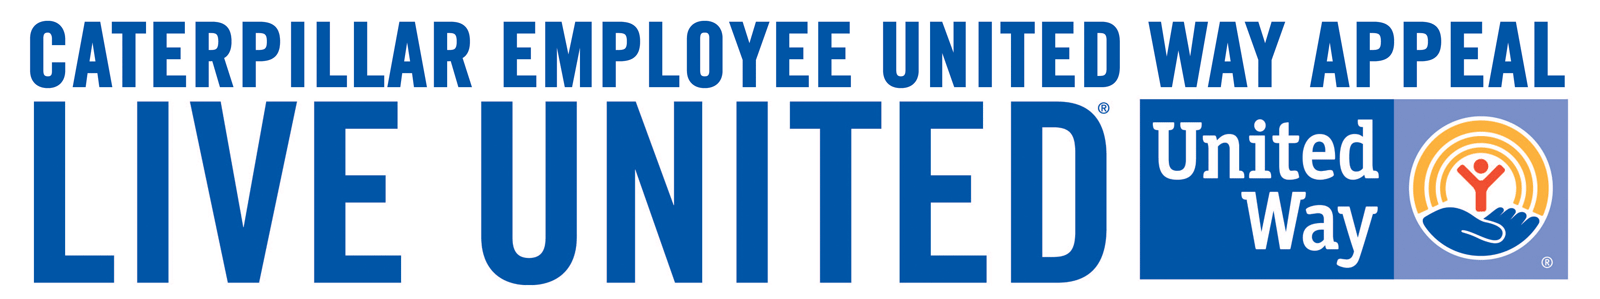 2020 Caterpillar Employee United Way Appeal